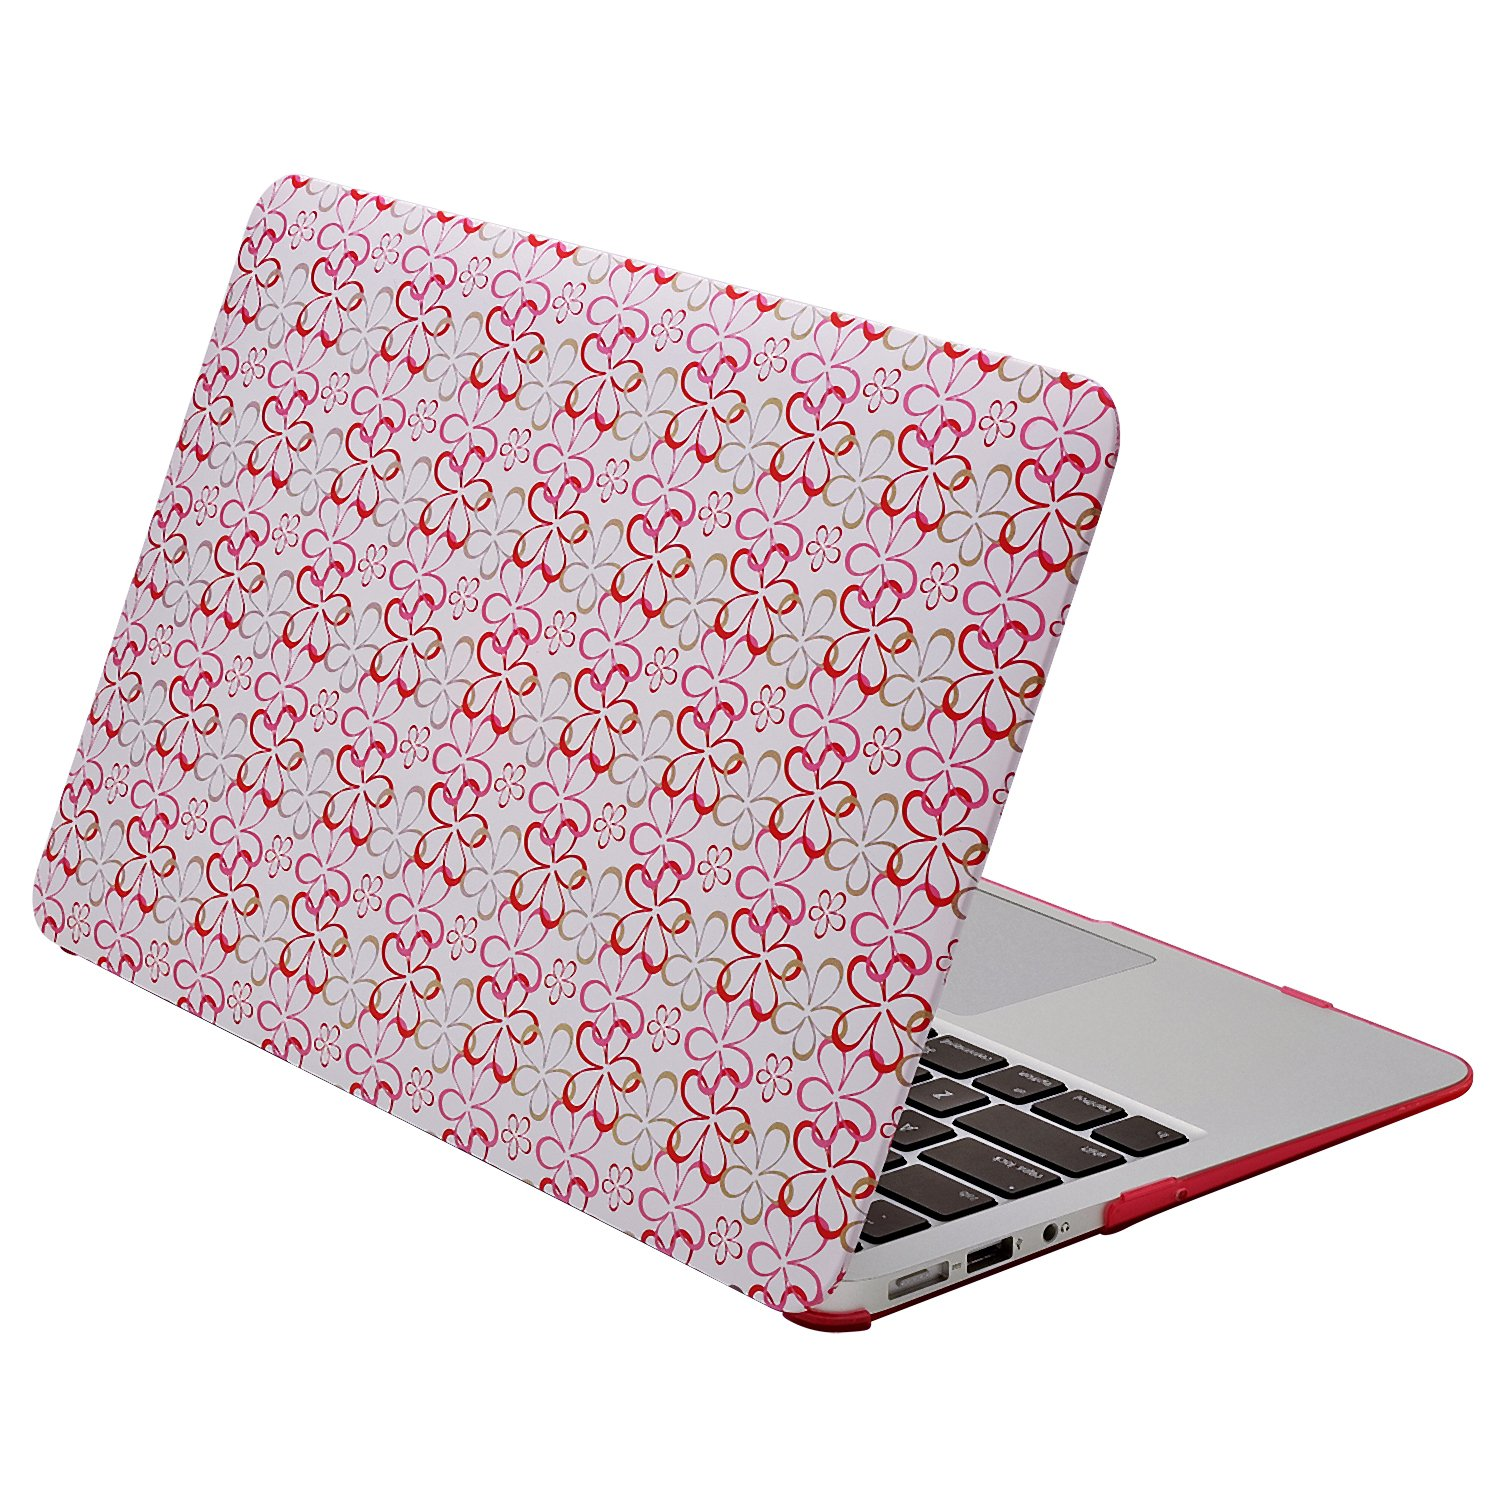 Aduro Macbook Air 11 SoftTouch Cover with Matching Silicone Keyboard Cover (Flower, AMA11-FLW-CV)